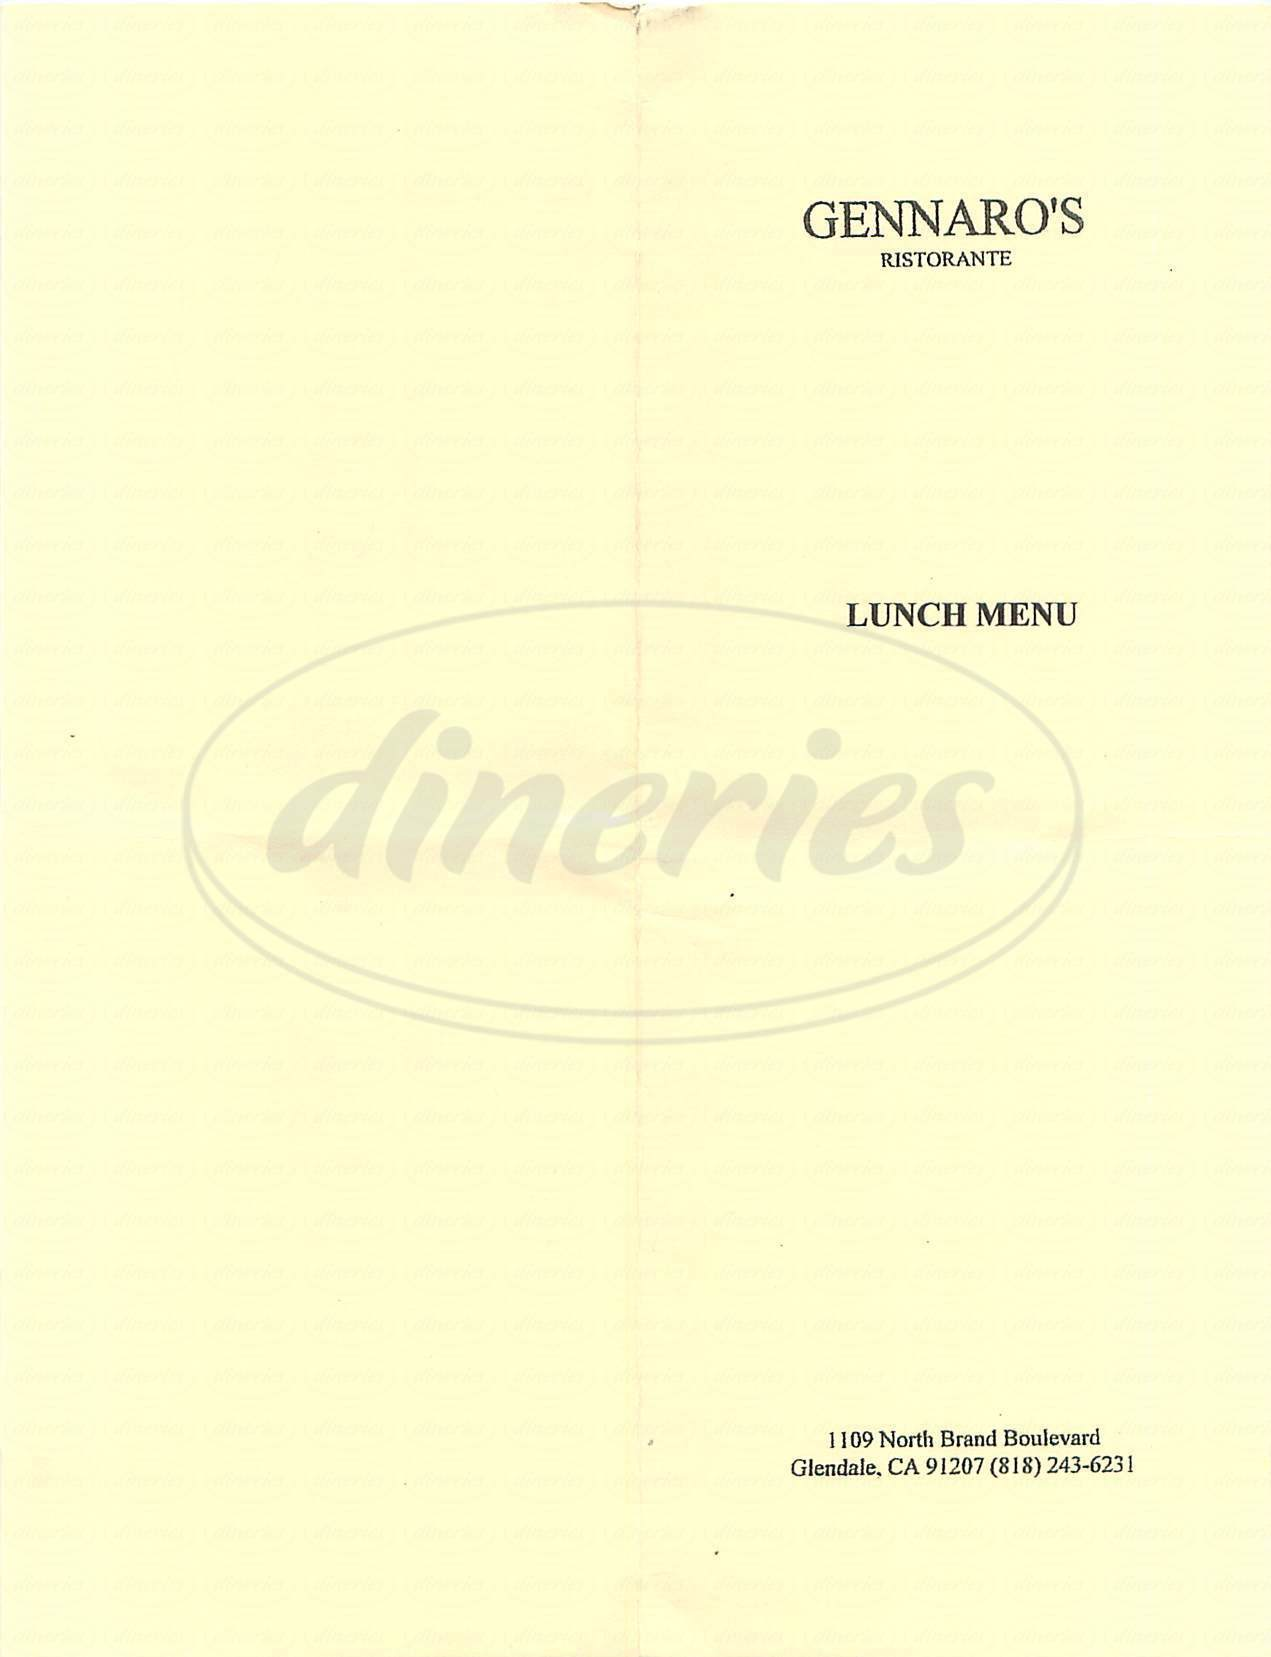 menu for Gennaro's Ristorante